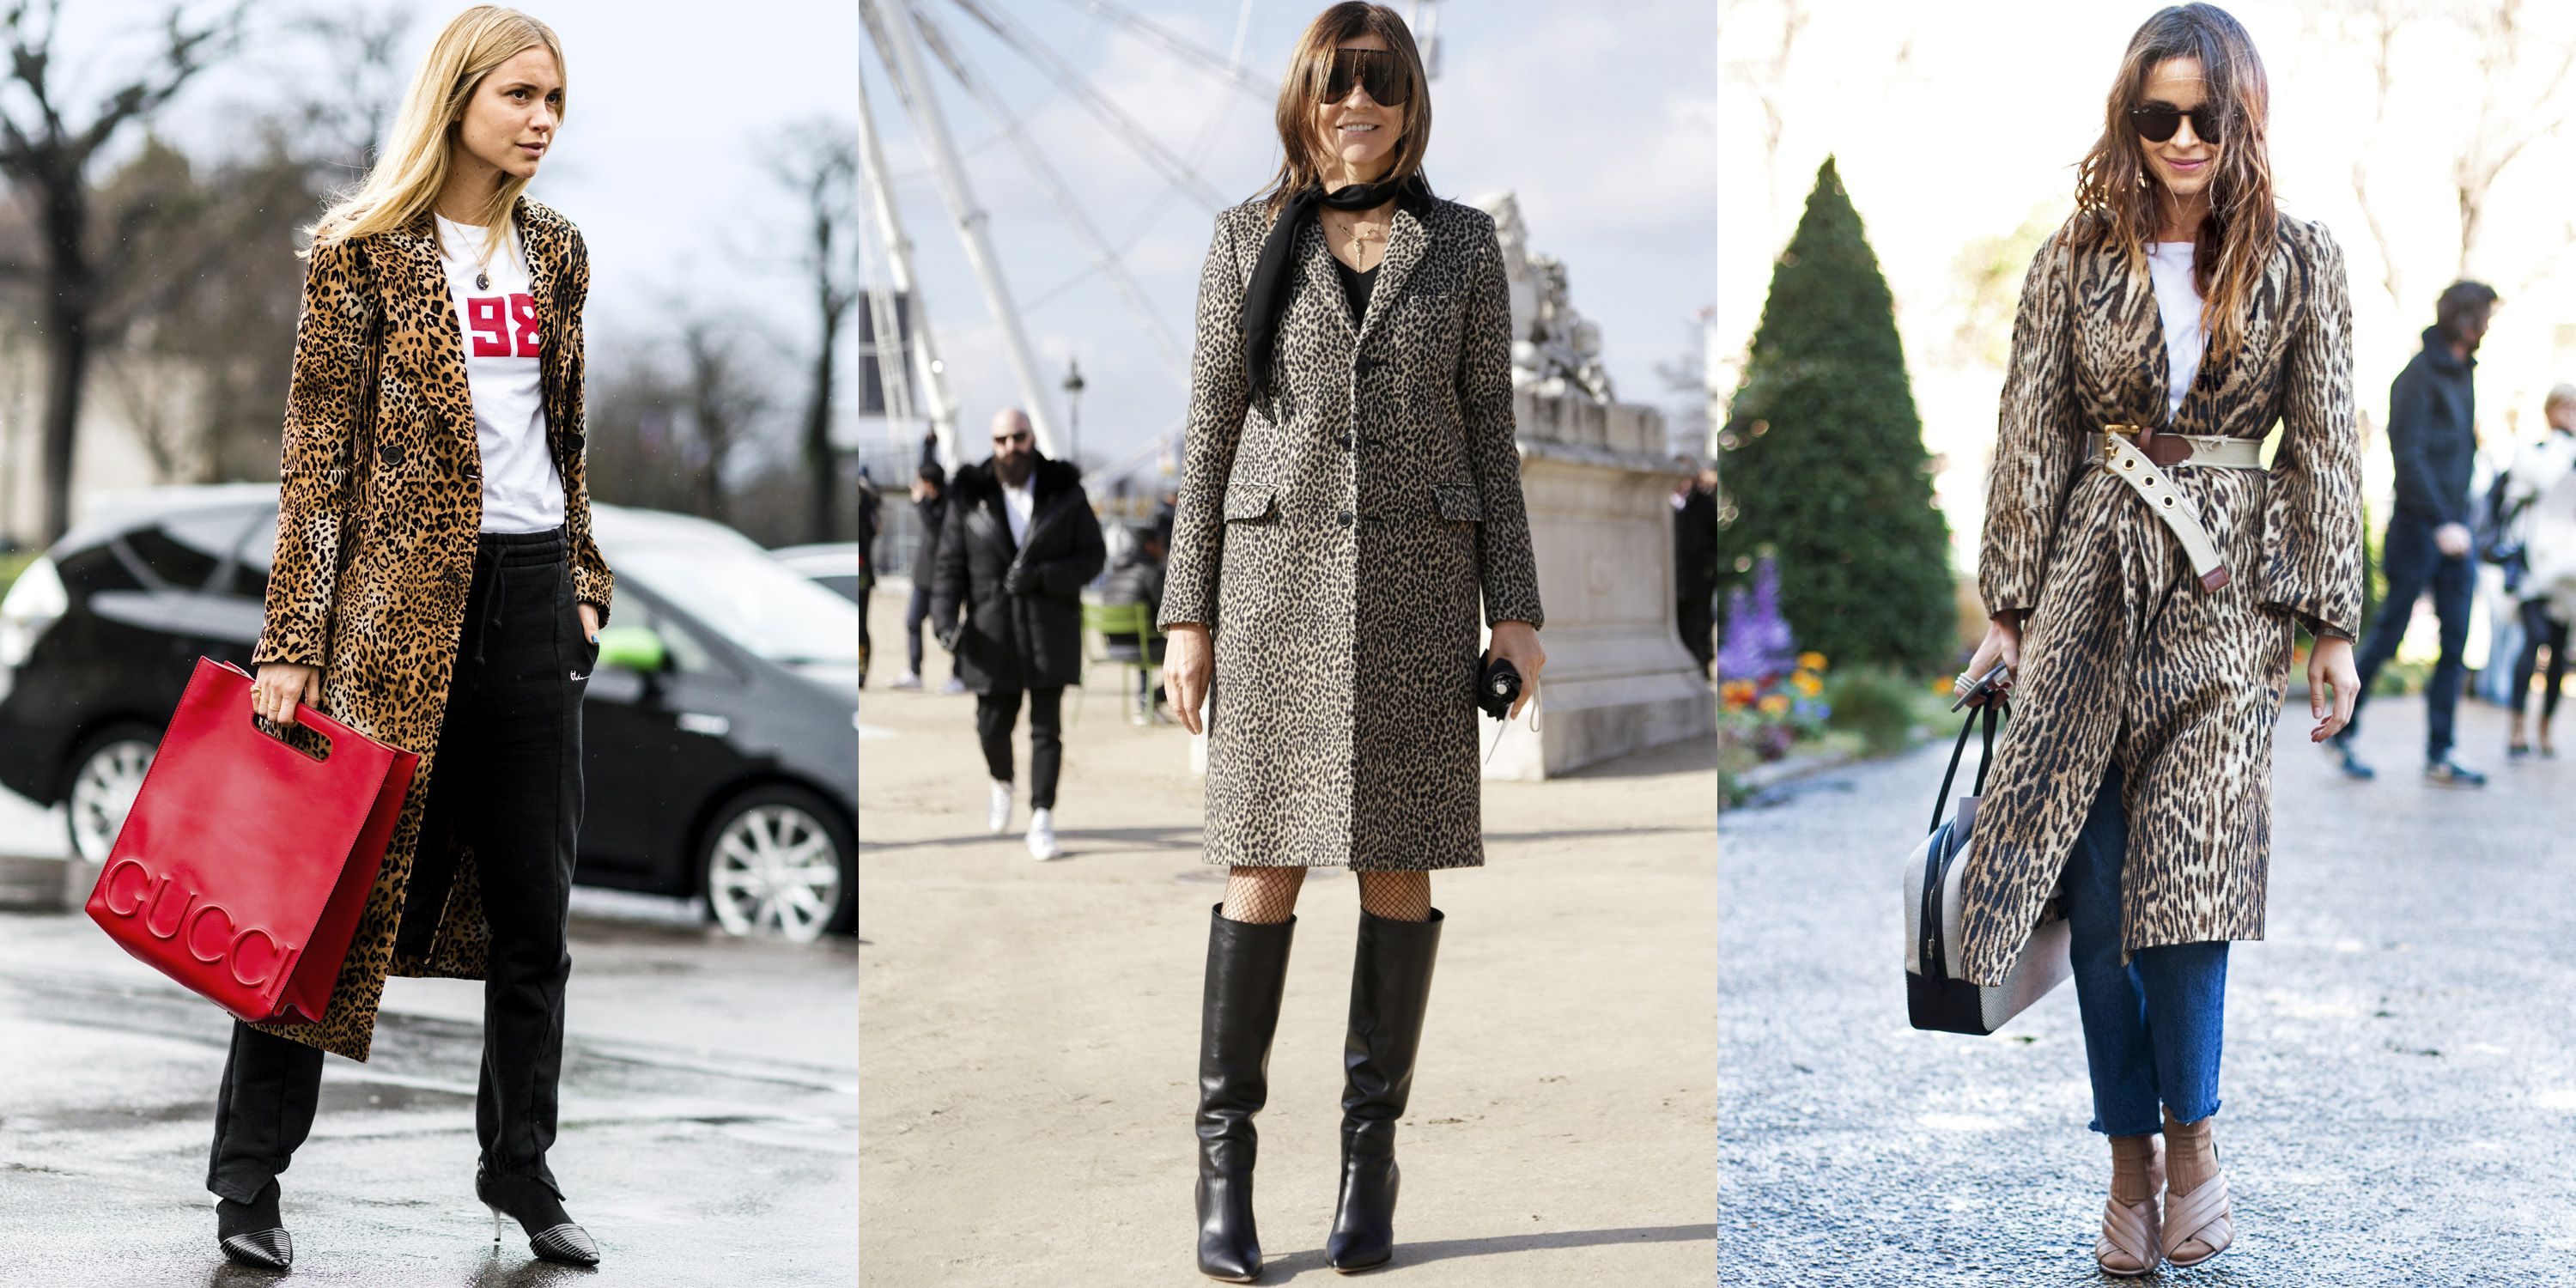 """<p>Outerwear with feline motifs is a total """"cat-ch"""" for fall. Channel street-style stars Pernille Teisbaek and Miroslava Duma and spring for an animal-print coat that makes any outfit's perfect finishing touch. Add red accessories and sleek boots for good measure.</p>"""